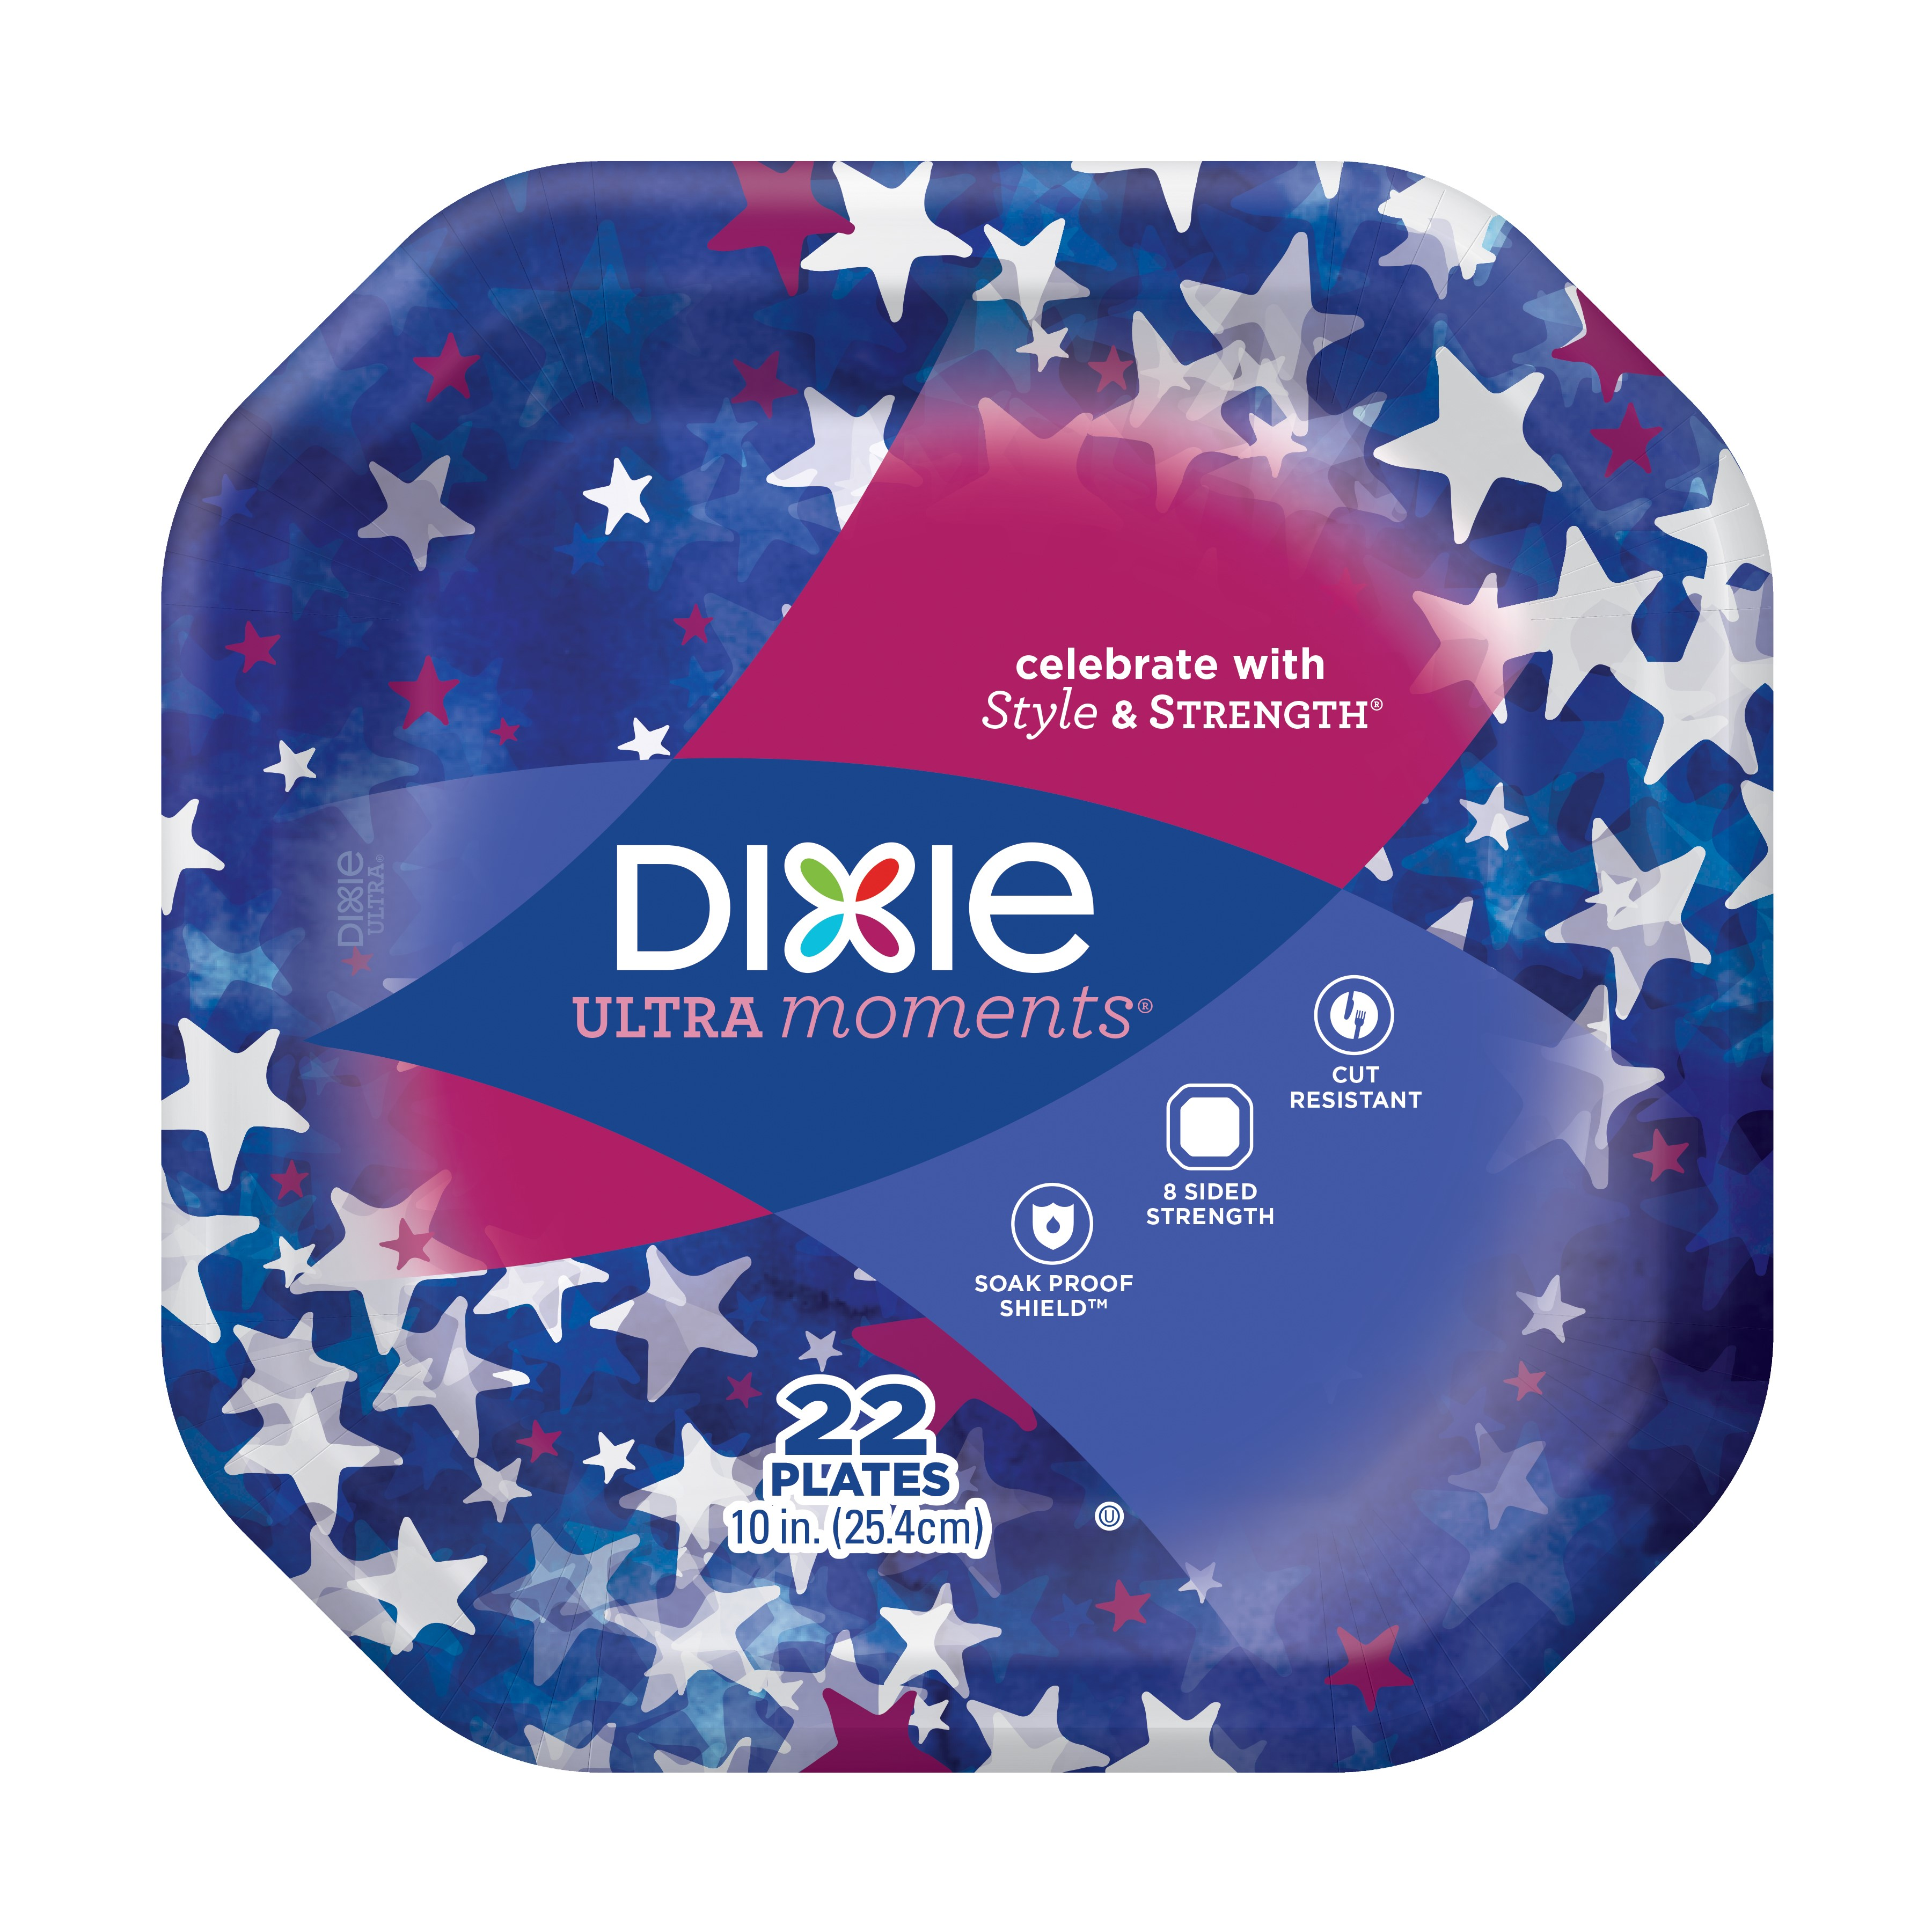 "Dixie Ultra Moments Paper Plates, 10"", 22 Count"